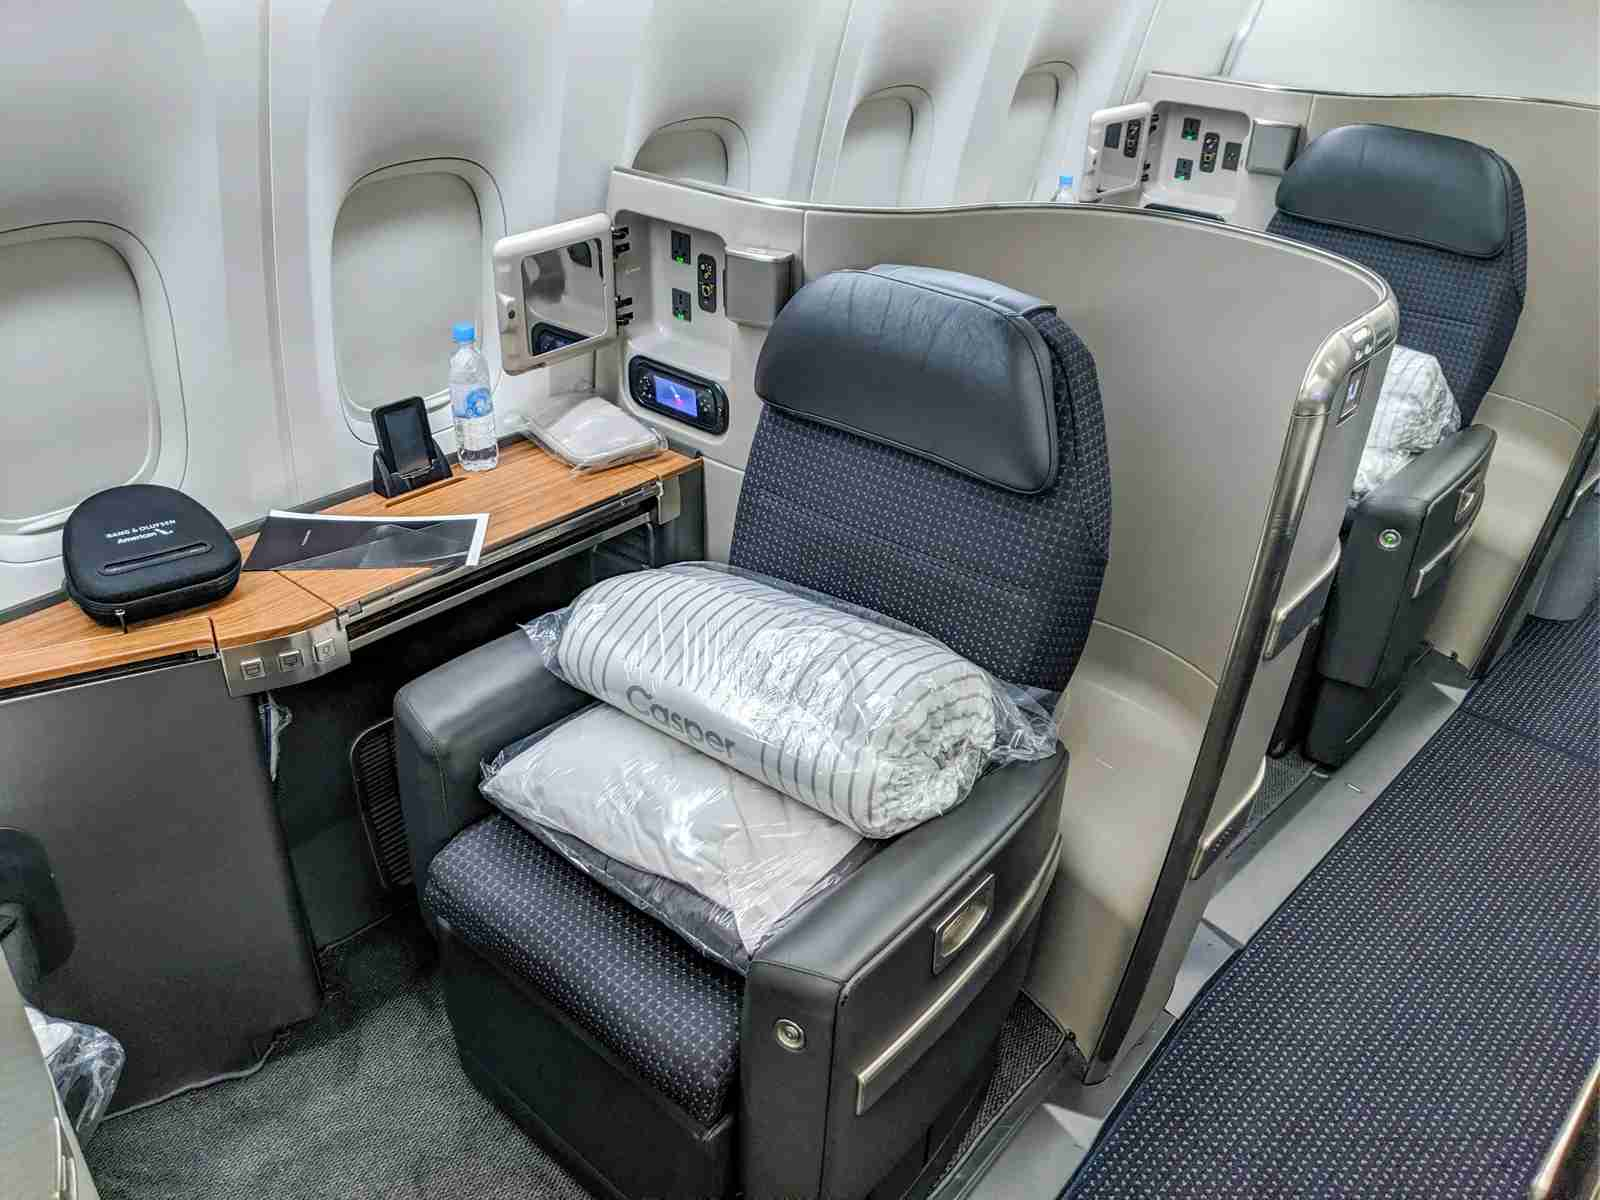 American Airlines First class (Photo by JT Genter/The Points Guy)